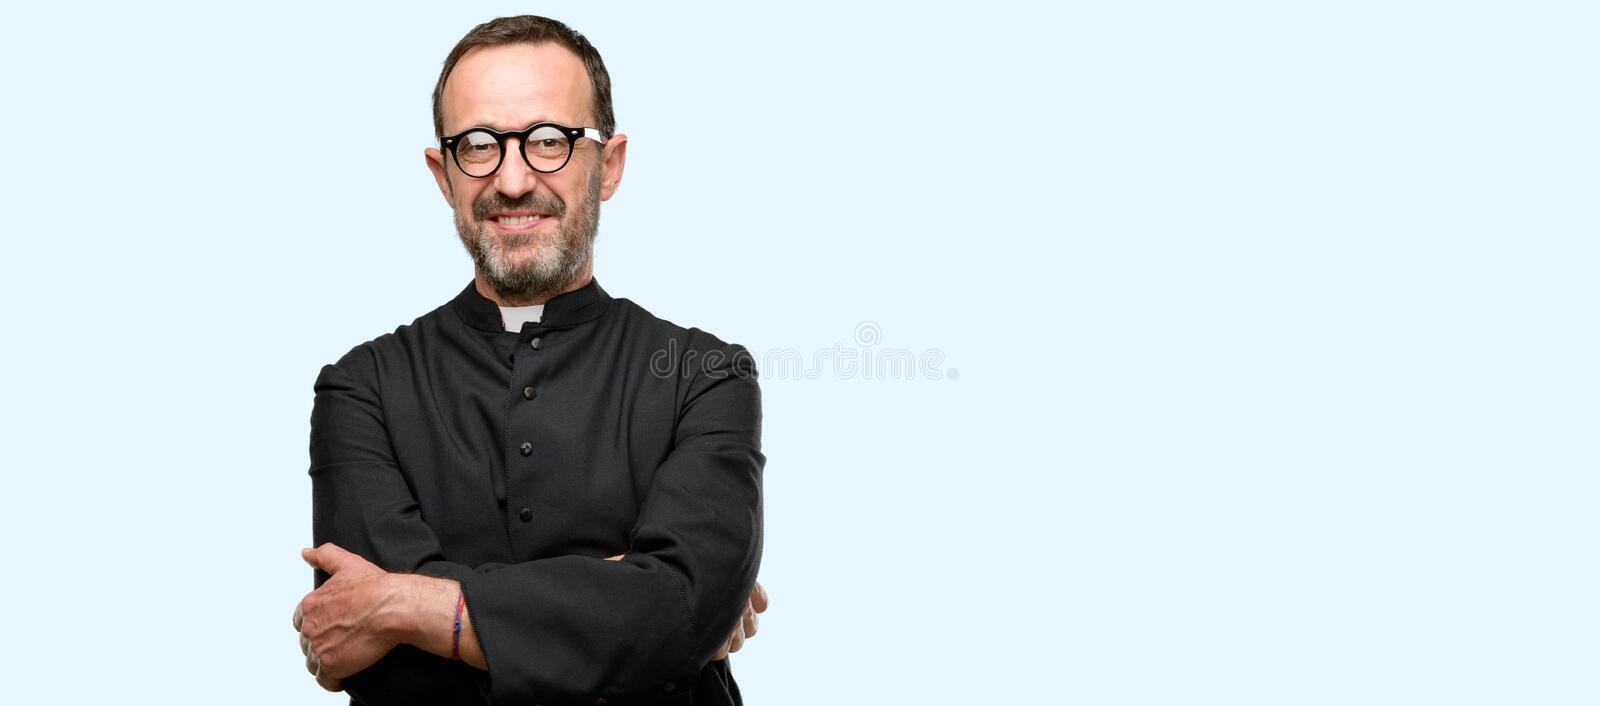 Handsome senior man isolated over blue background. Priest religion man with crossed arms confident and happy with a big natural smile laughing isolated over blue stock image